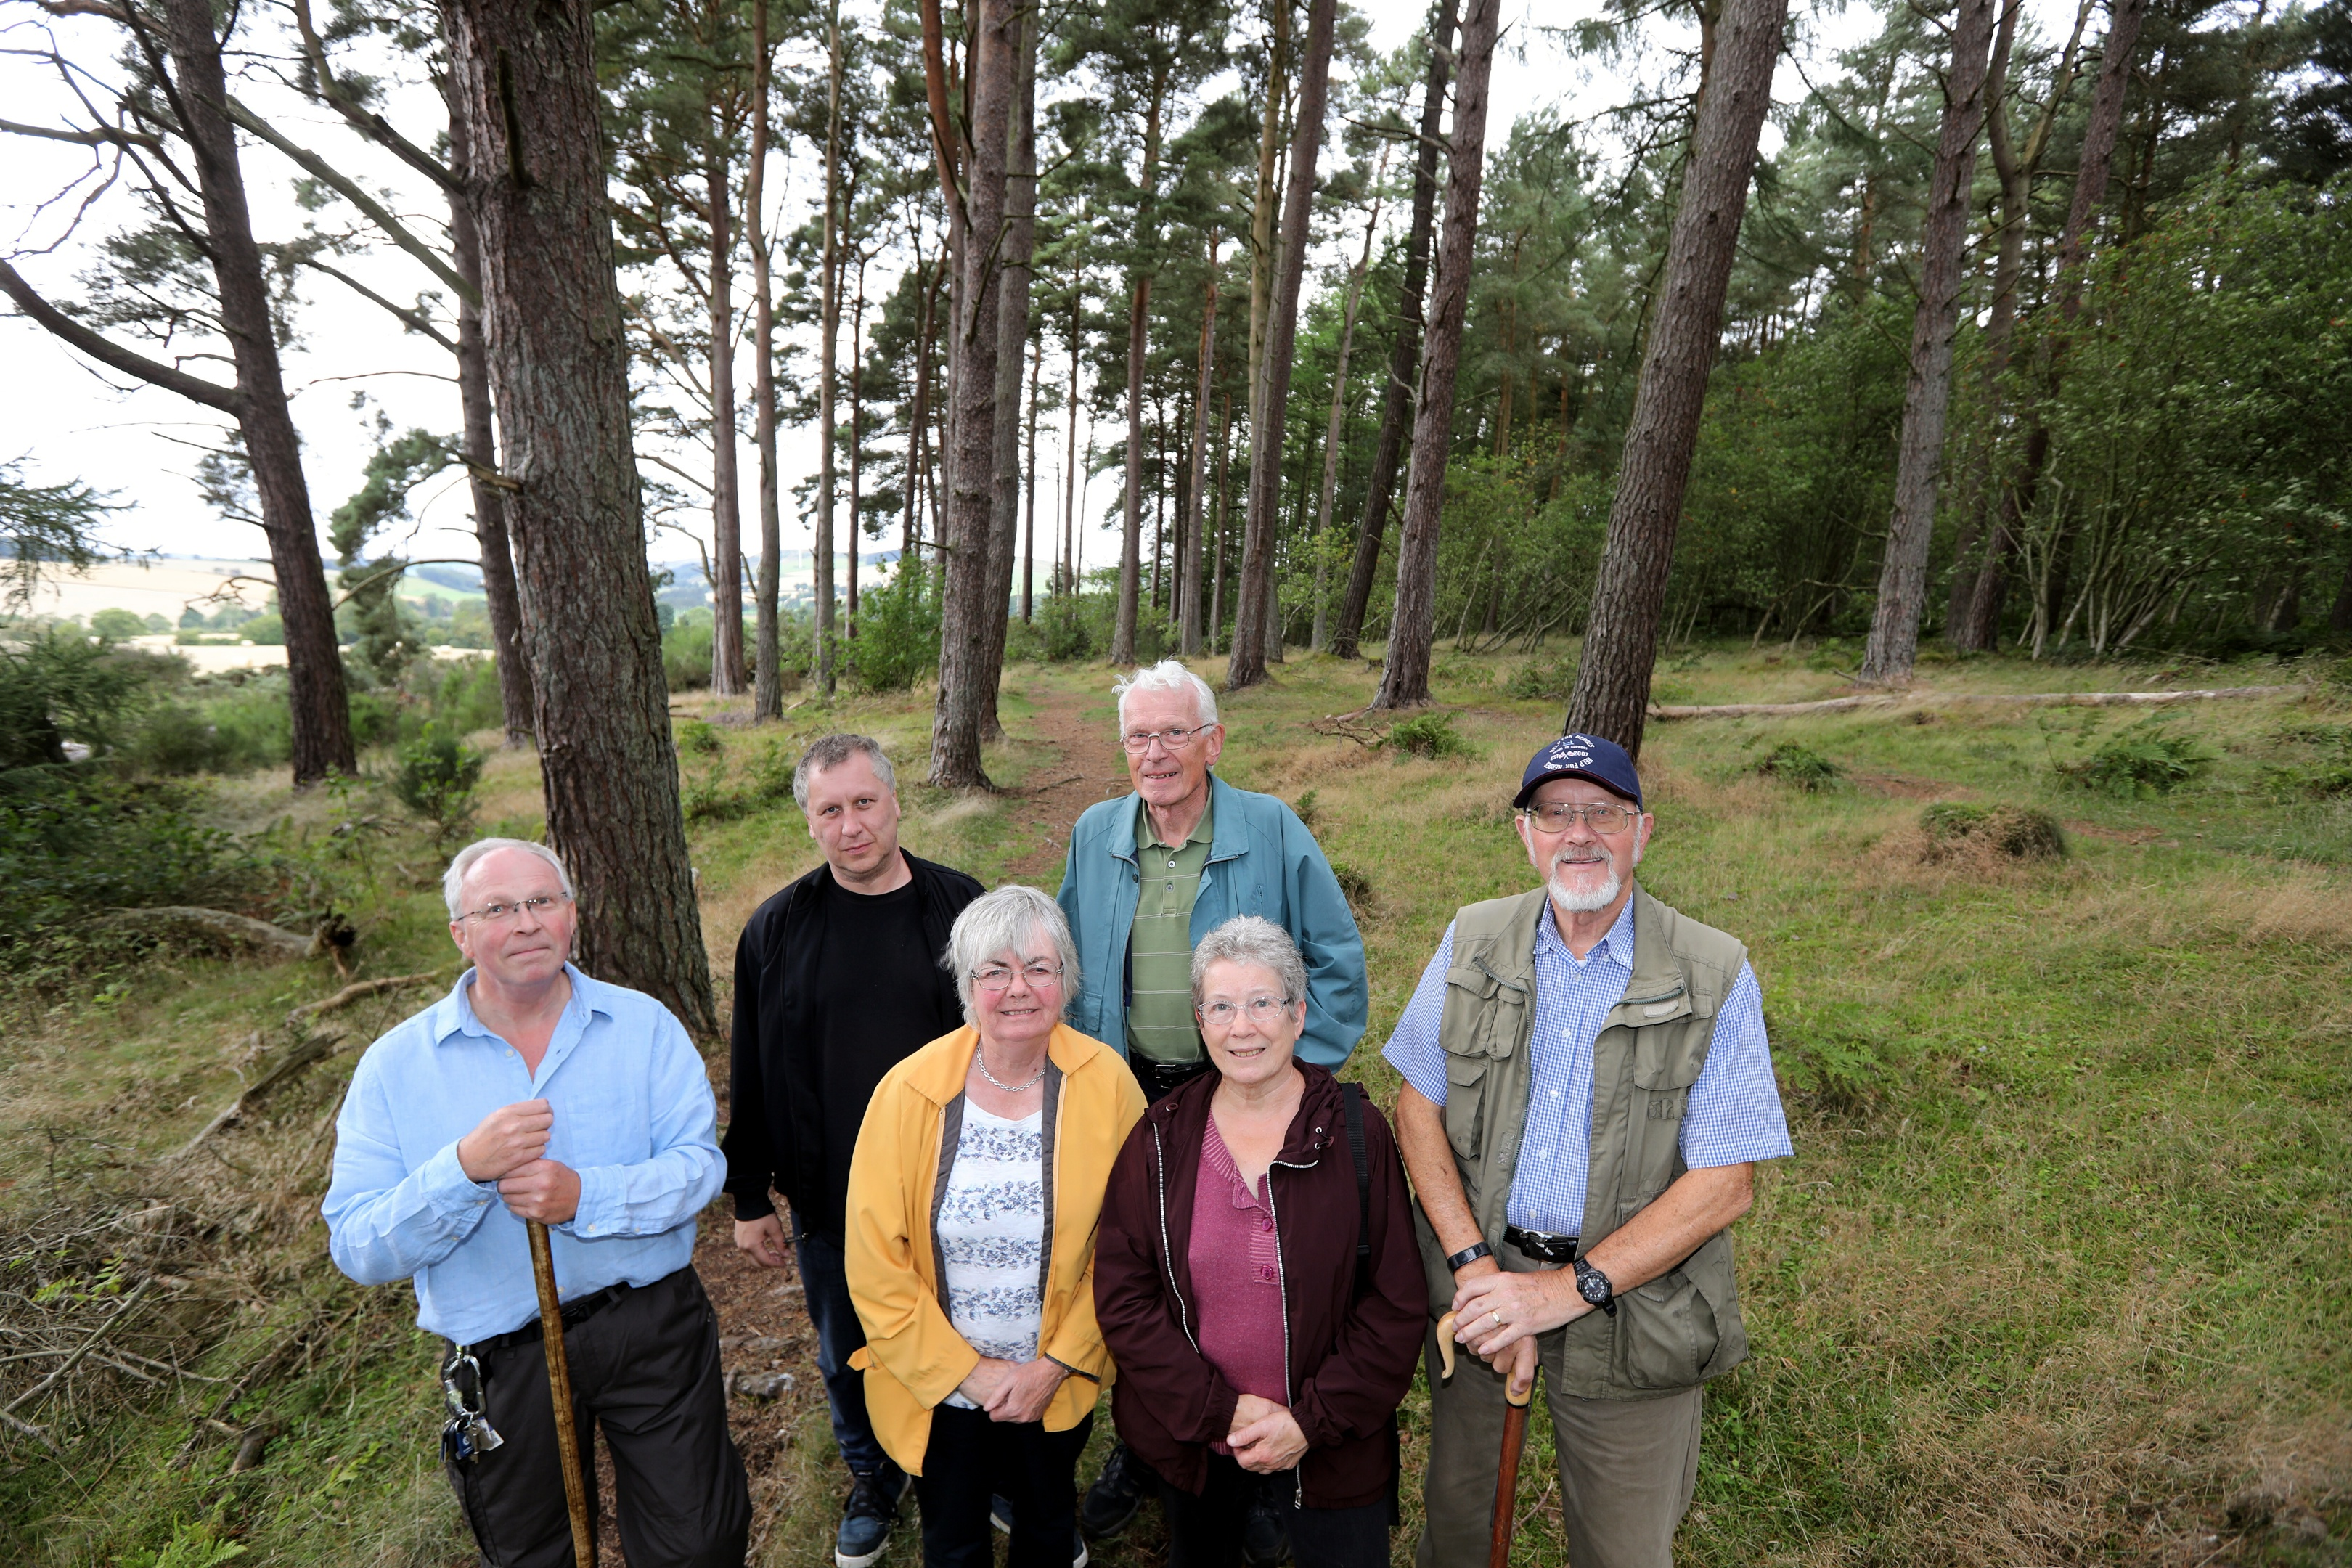 Members of the Dronley Wood Community Group, from left, Roderick Stewart, Scott McDermott, Shiona Baird, Gary Stewart, Linda Cochrane and Ian Wilson.